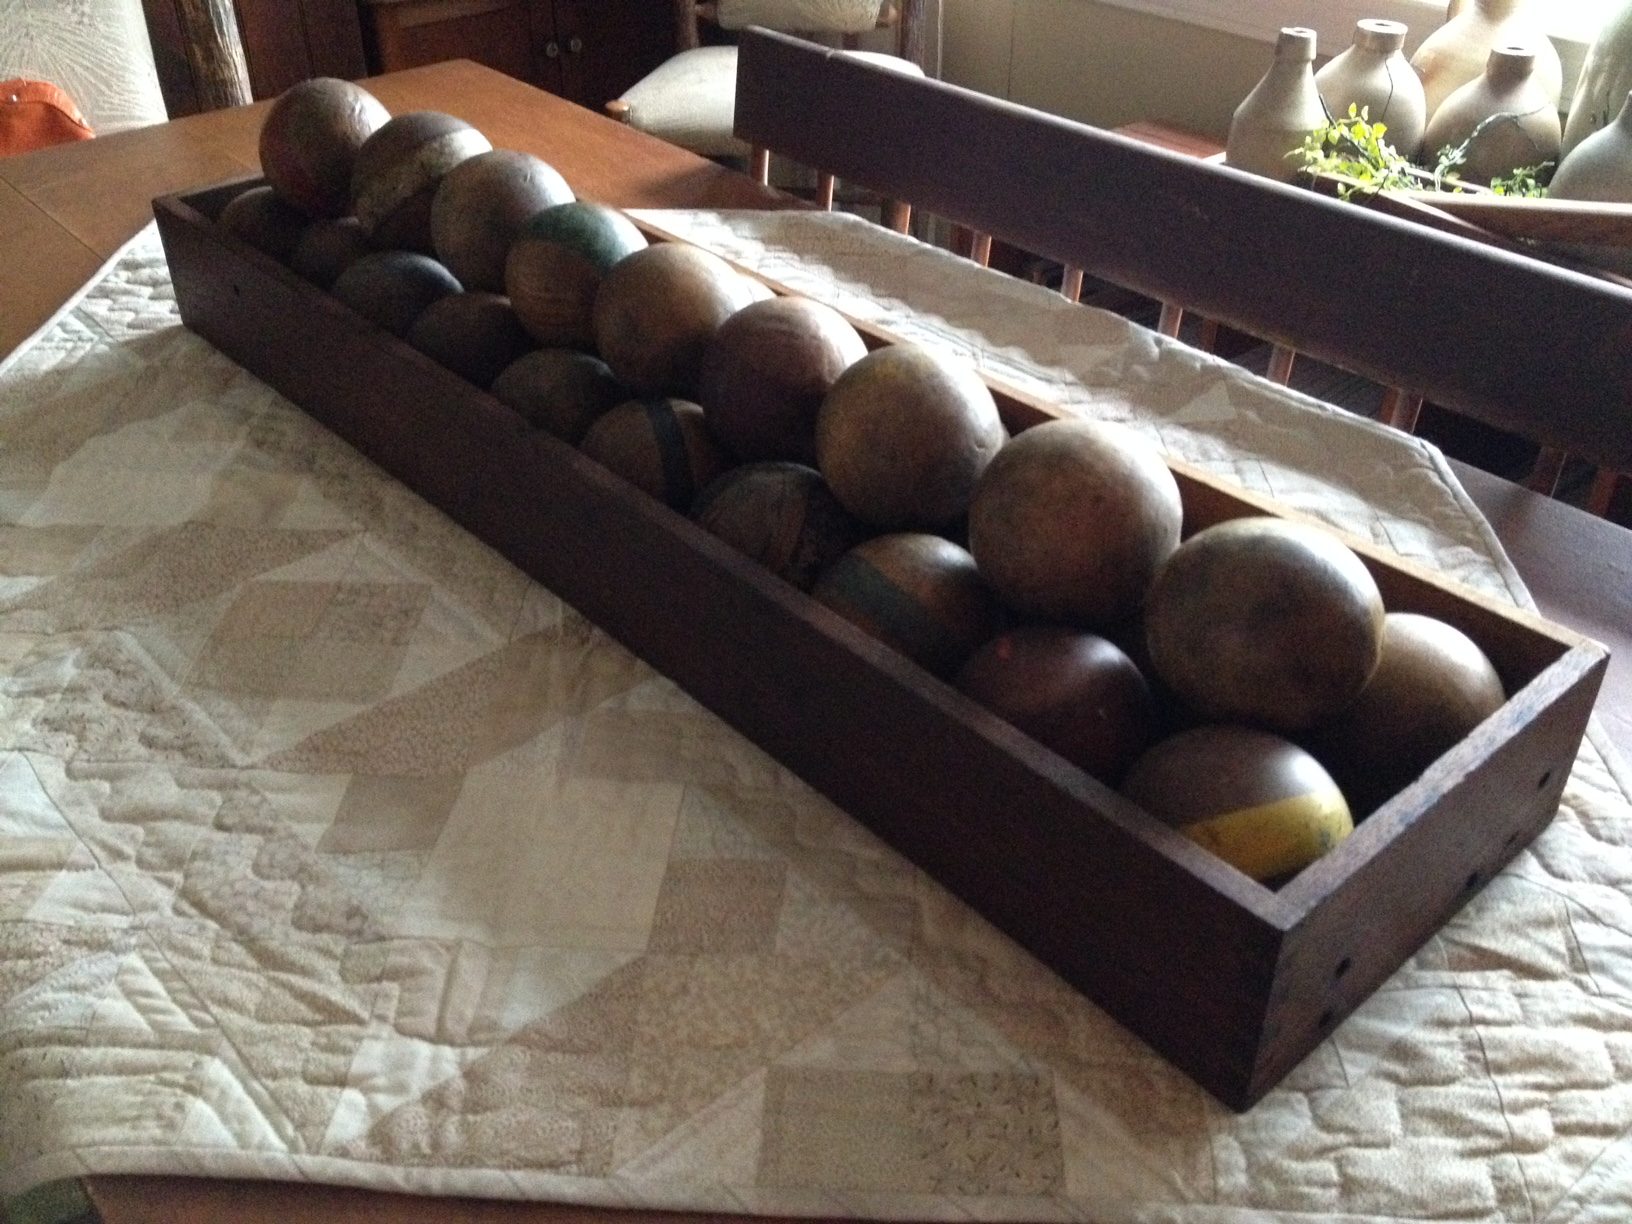 Decorating with Wooden Balls